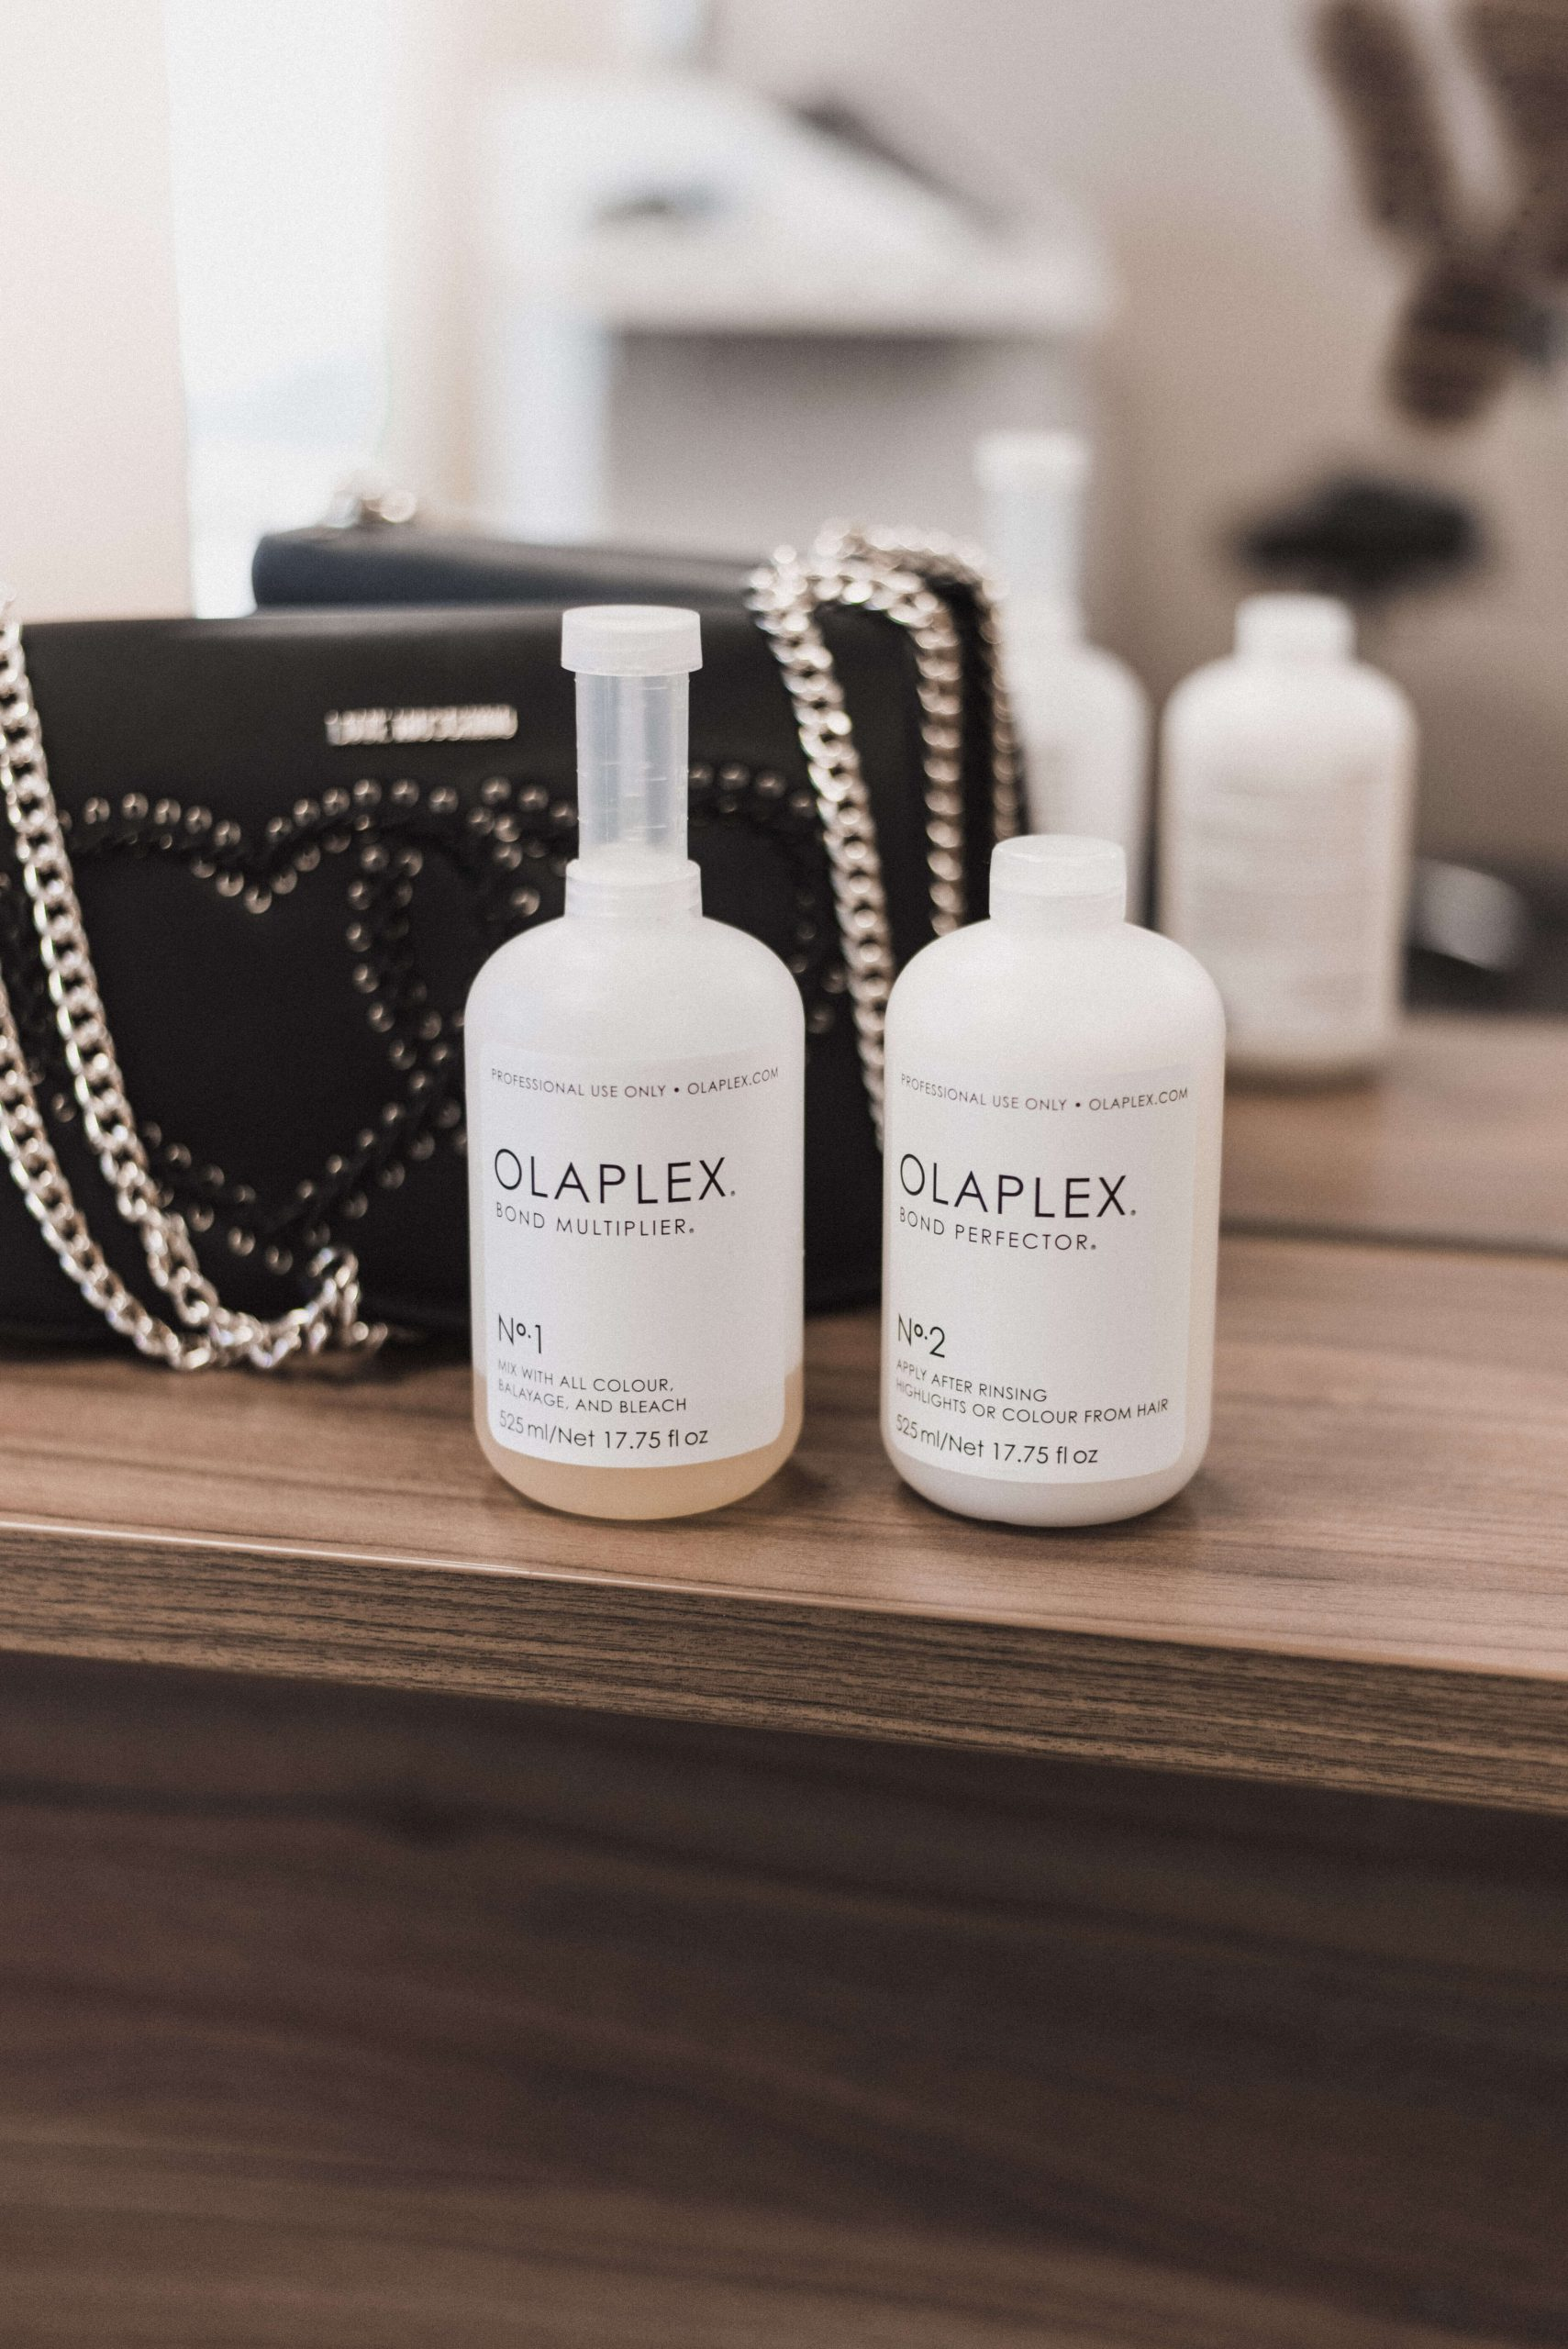 olaplex im salon und zuhause dolce petite 11 klipp blog. Black Bedroom Furniture Sets. Home Design Ideas